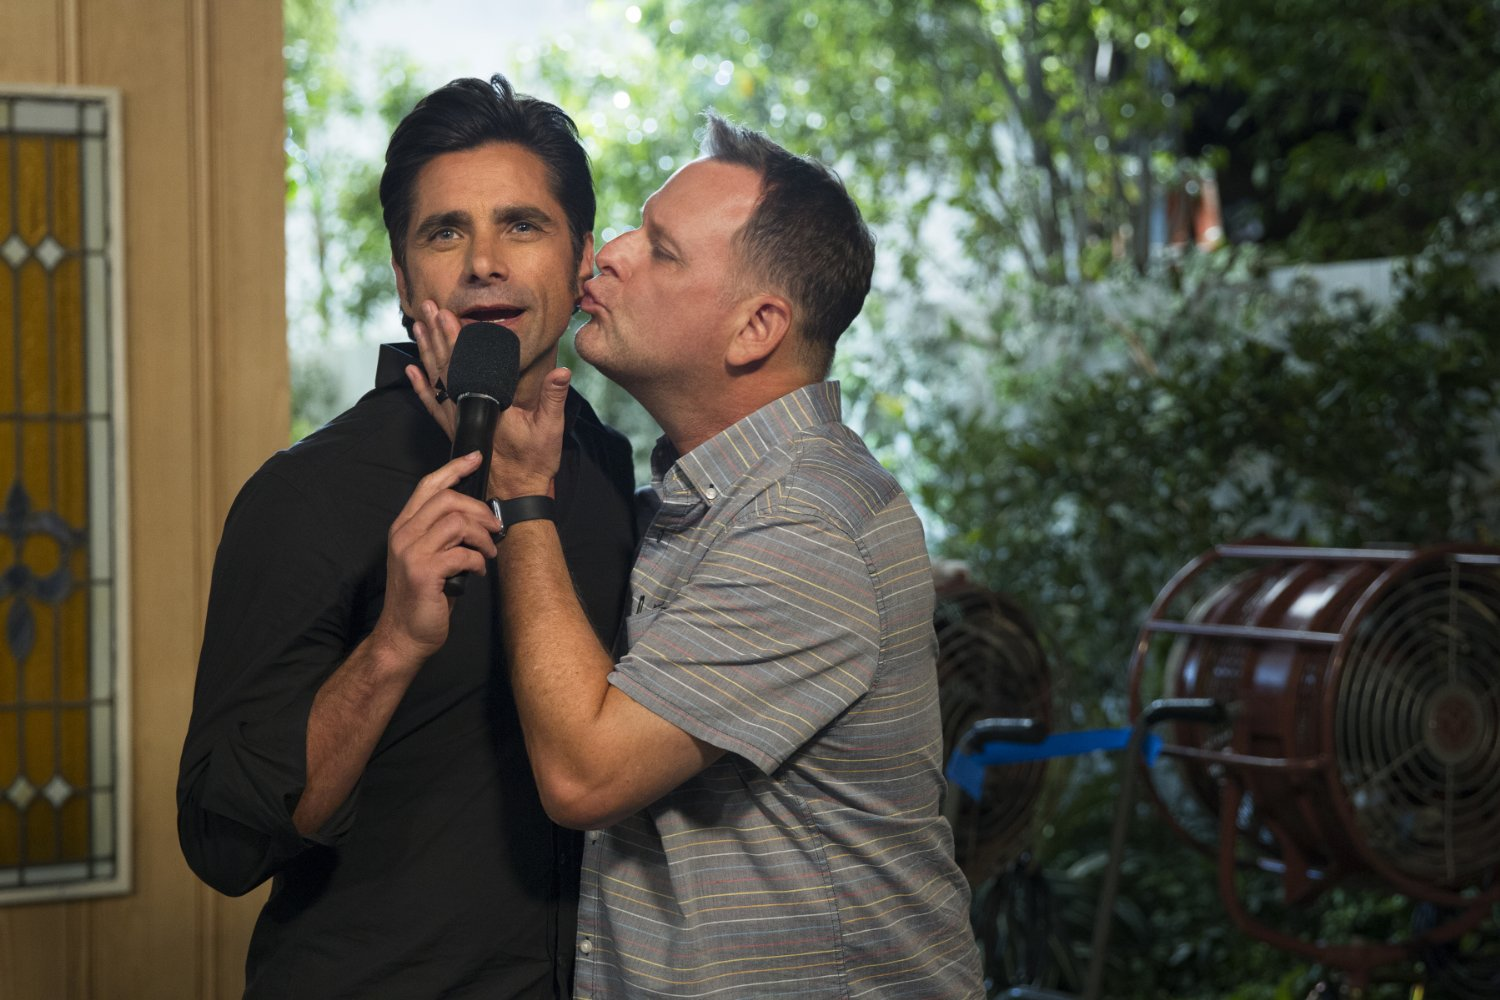 John_Stamos_and_Dave_Coulier_in_Fuller_House4334